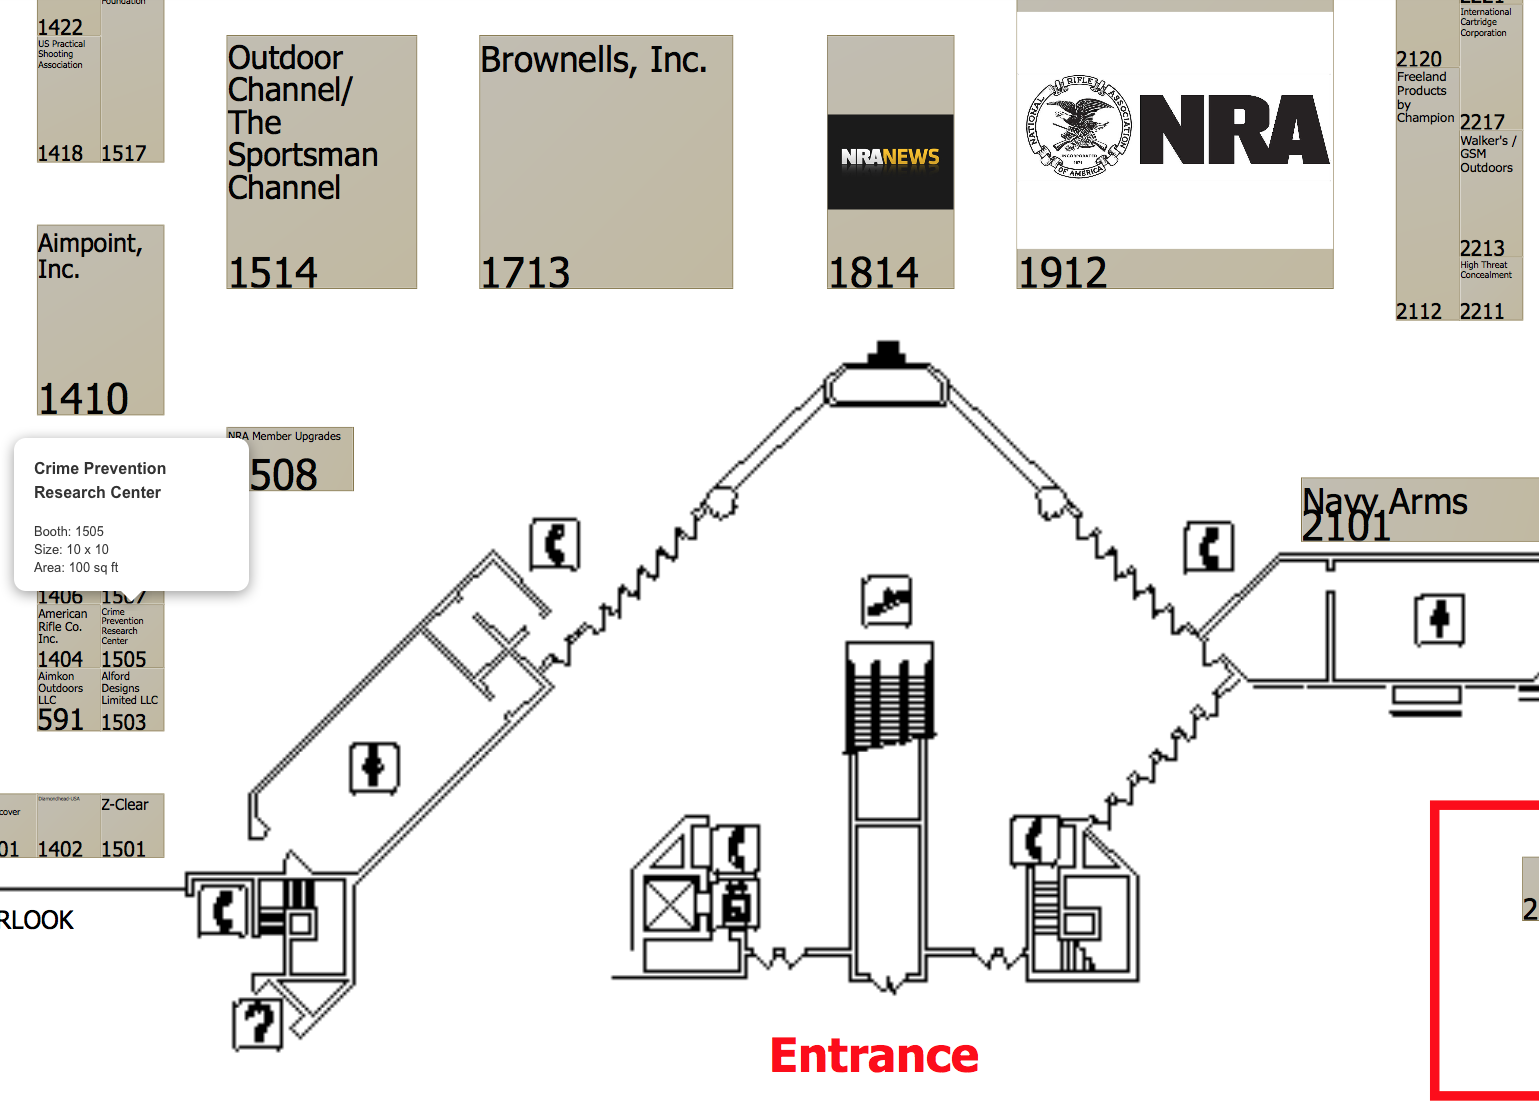 cprc will have a booth at the nra convention this coming weekend